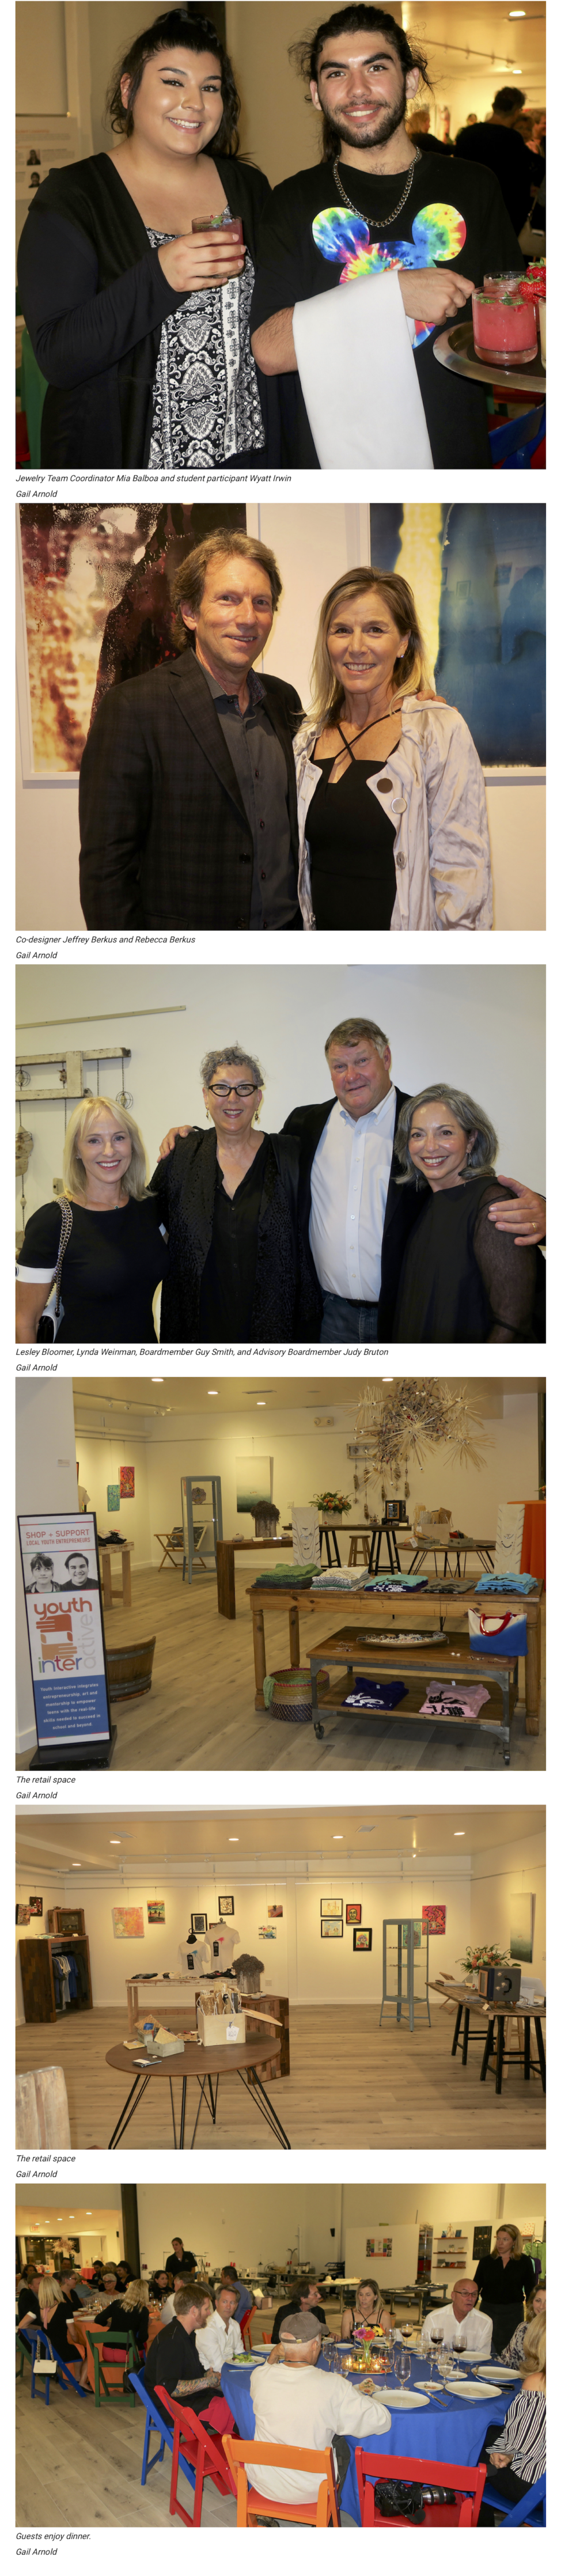 Youth Interactive and Hutton Parker Foundation Host Soirée – The Santa Barbara Independent (dragged) 2.png